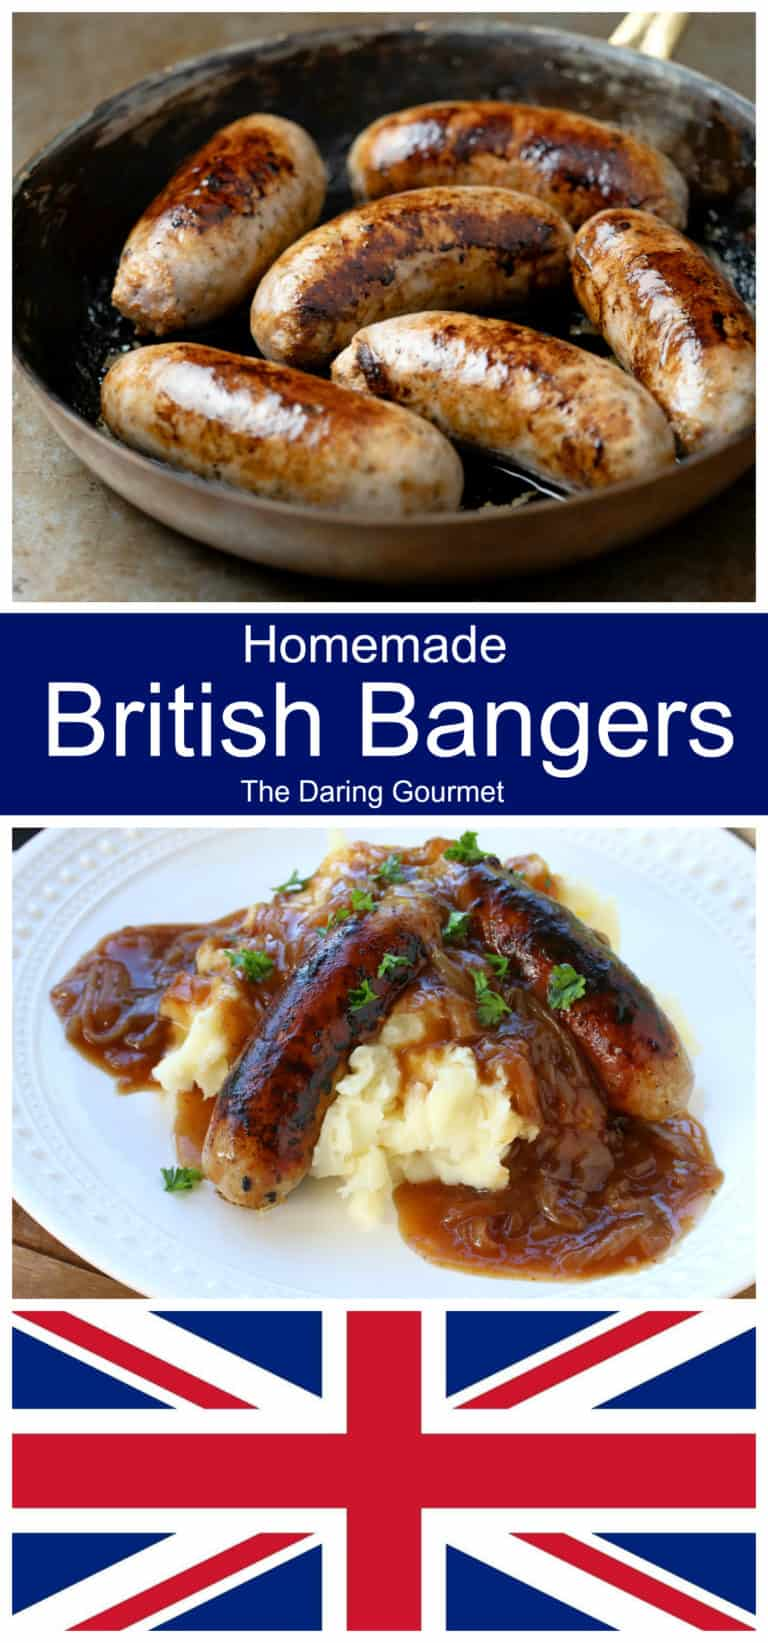 bangers recipe British sausages homemade traditional authentic